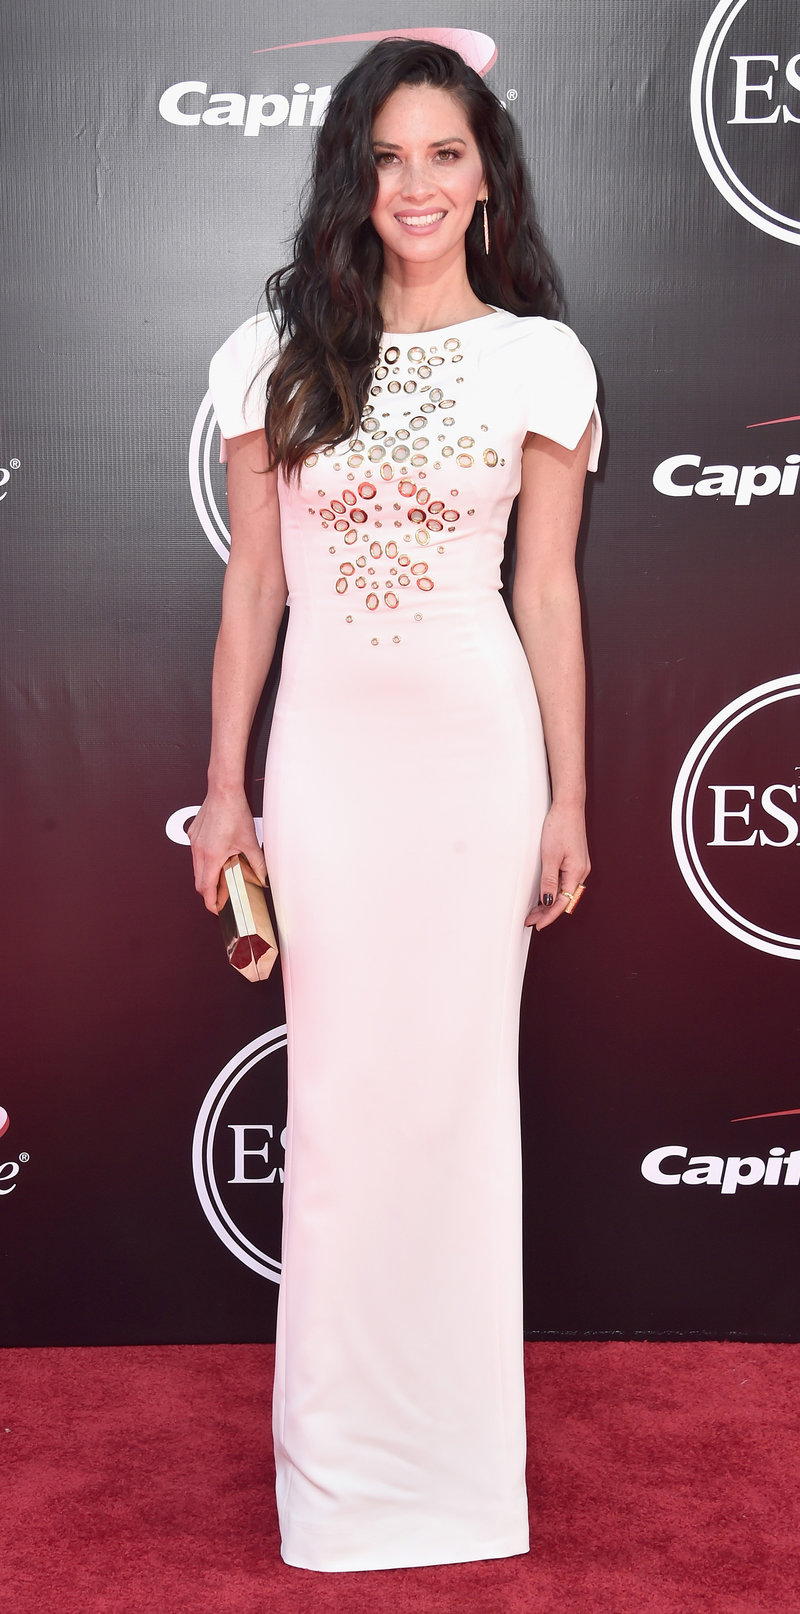 LOS ANGELES, CA - JULY 13: Actress Olivia Munn attends the 2016 ESPYS at Microsoft Theater on July 13, 2016 in Los Angeles, California. (Photo by Alberto E. Rodriguez/Getty Images)